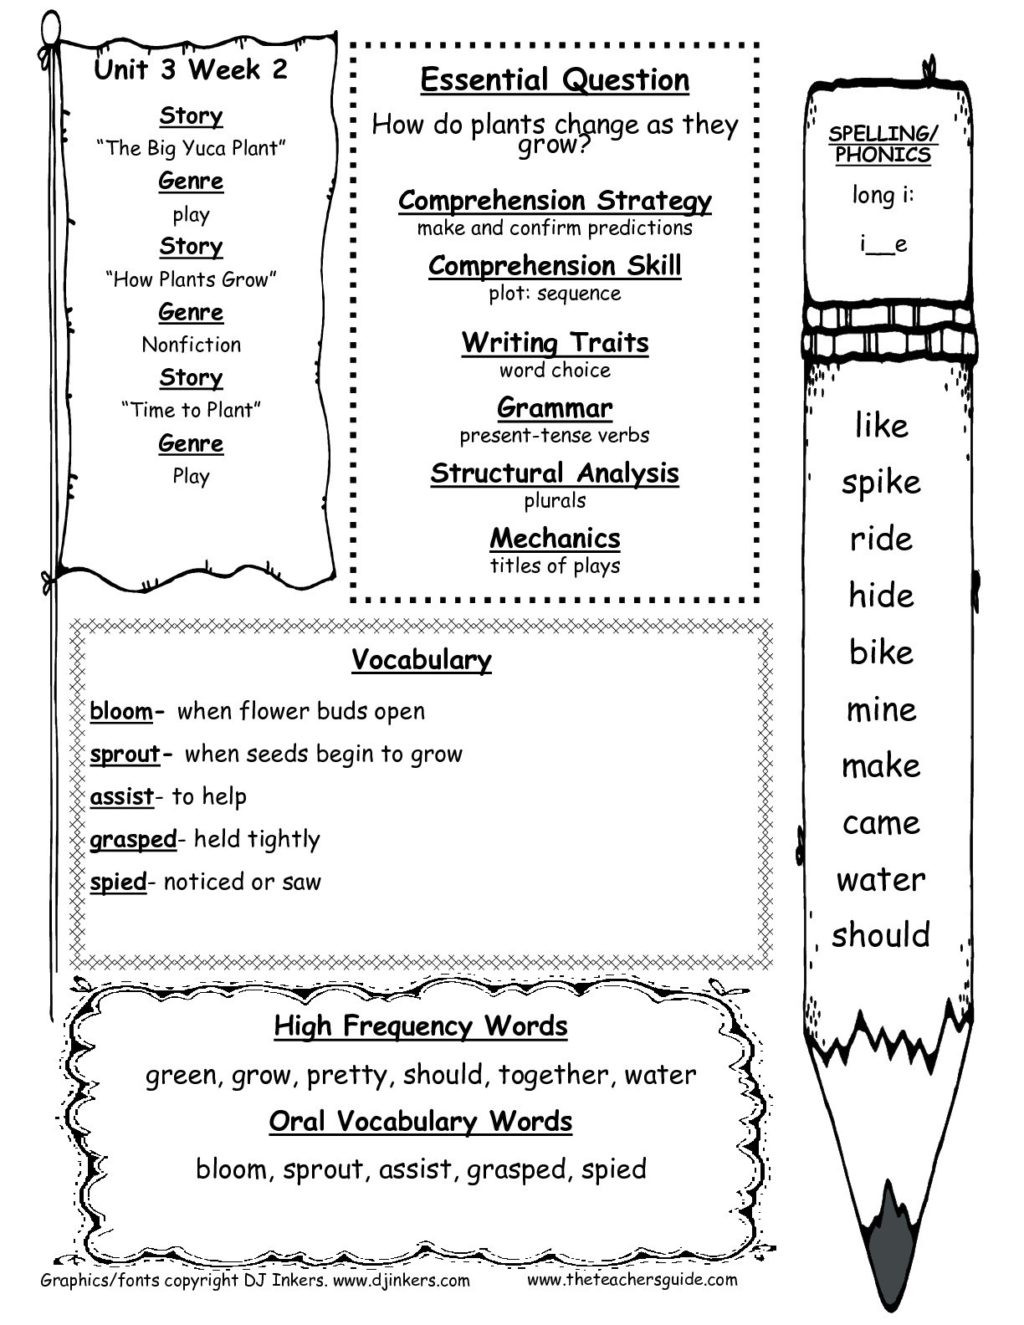 Kindergarten Spelling Words Printable Worksheet Spellingords for 1st Grade Image Ideasorksheets